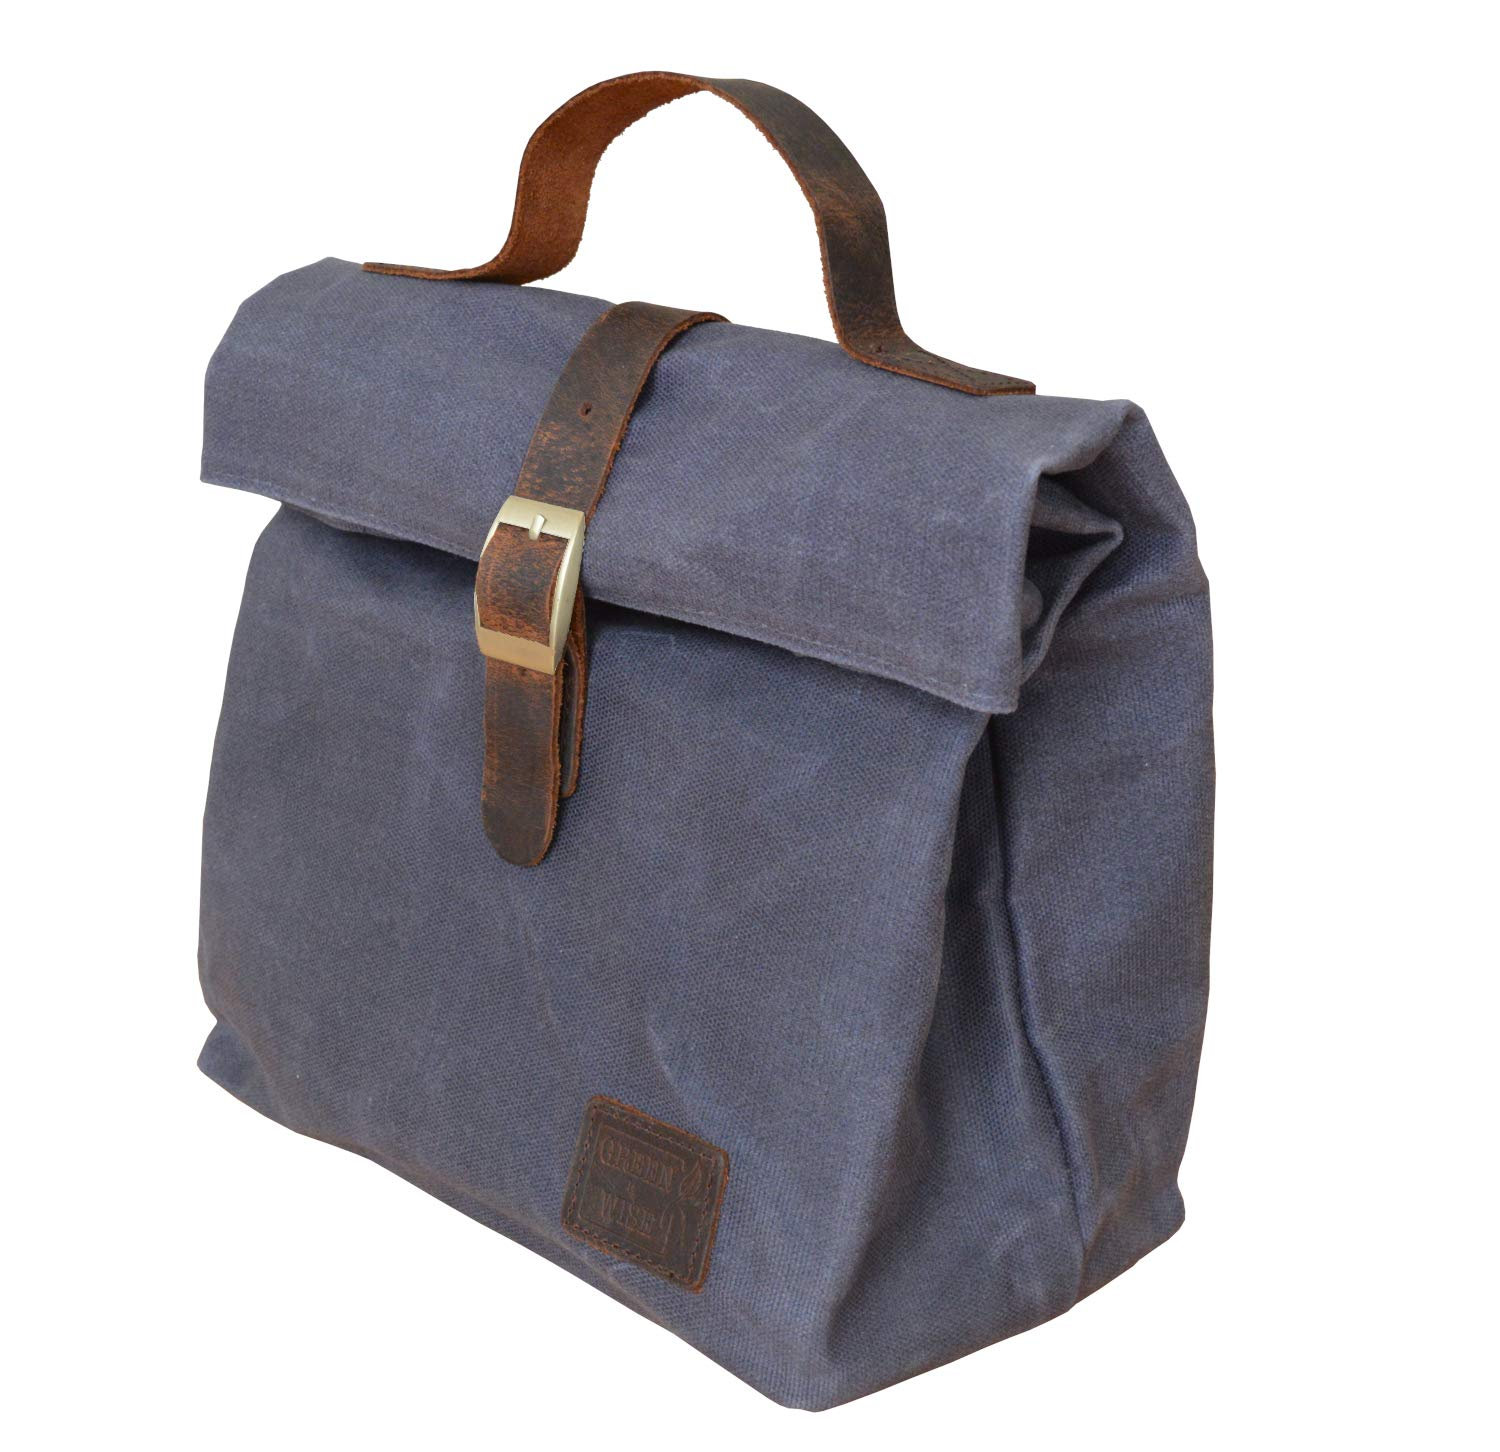 Insulated Waxed Cotton Canvas Lunch Bag for Men&Women w/Genuine Leather Details & Outside Pocket | Perfect For Work, School, Picnic or Travel |Designer Tote |Light Weight, Spacious, Collapsible (Blue)